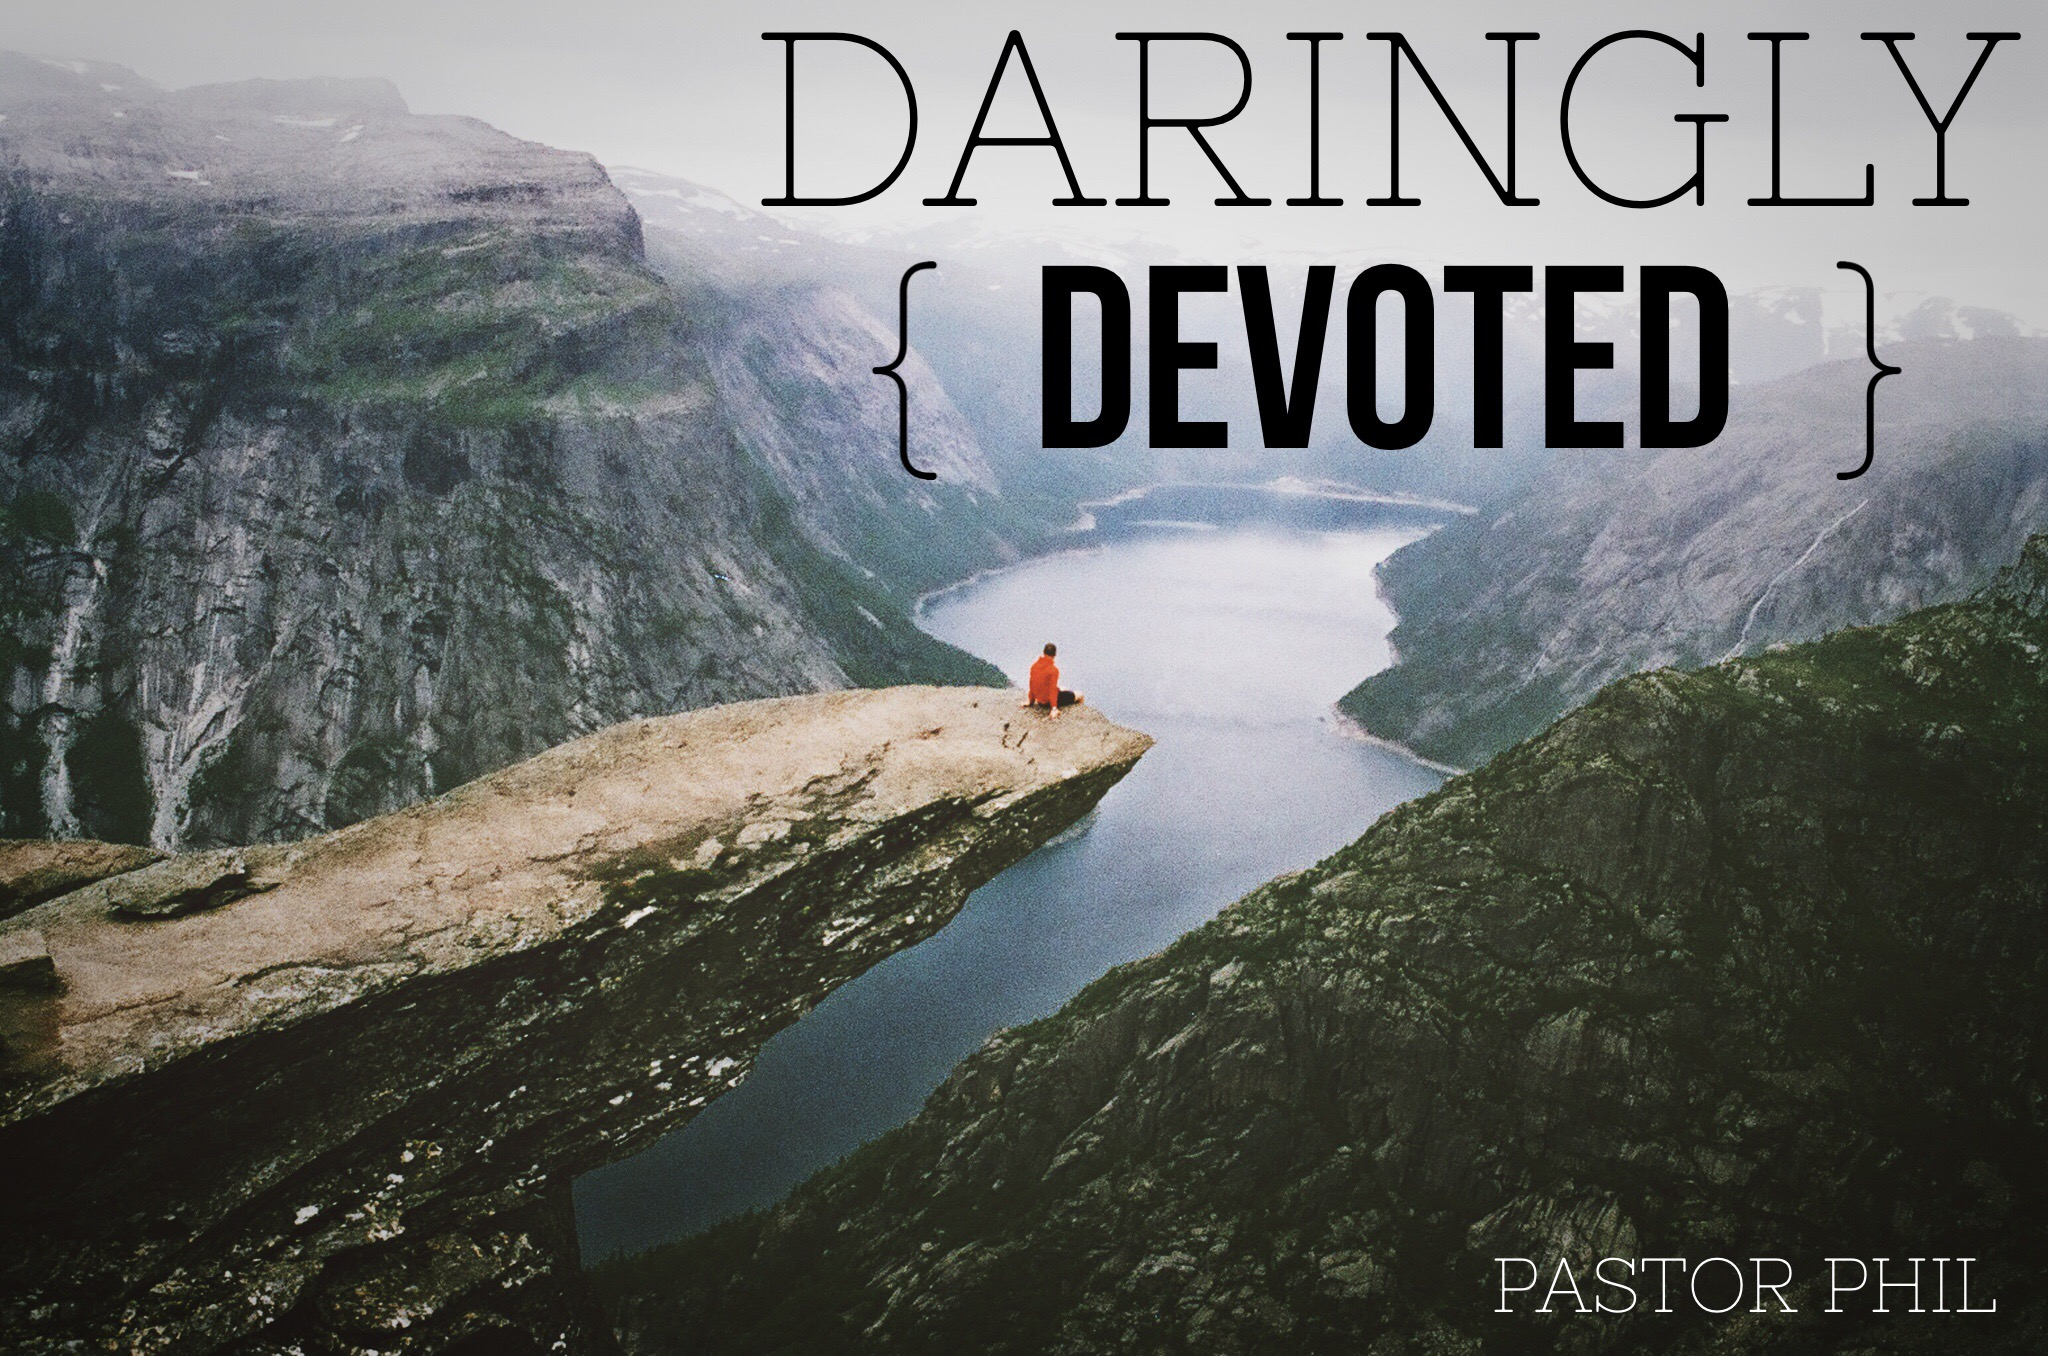 Daringly Devoted Pt. 1